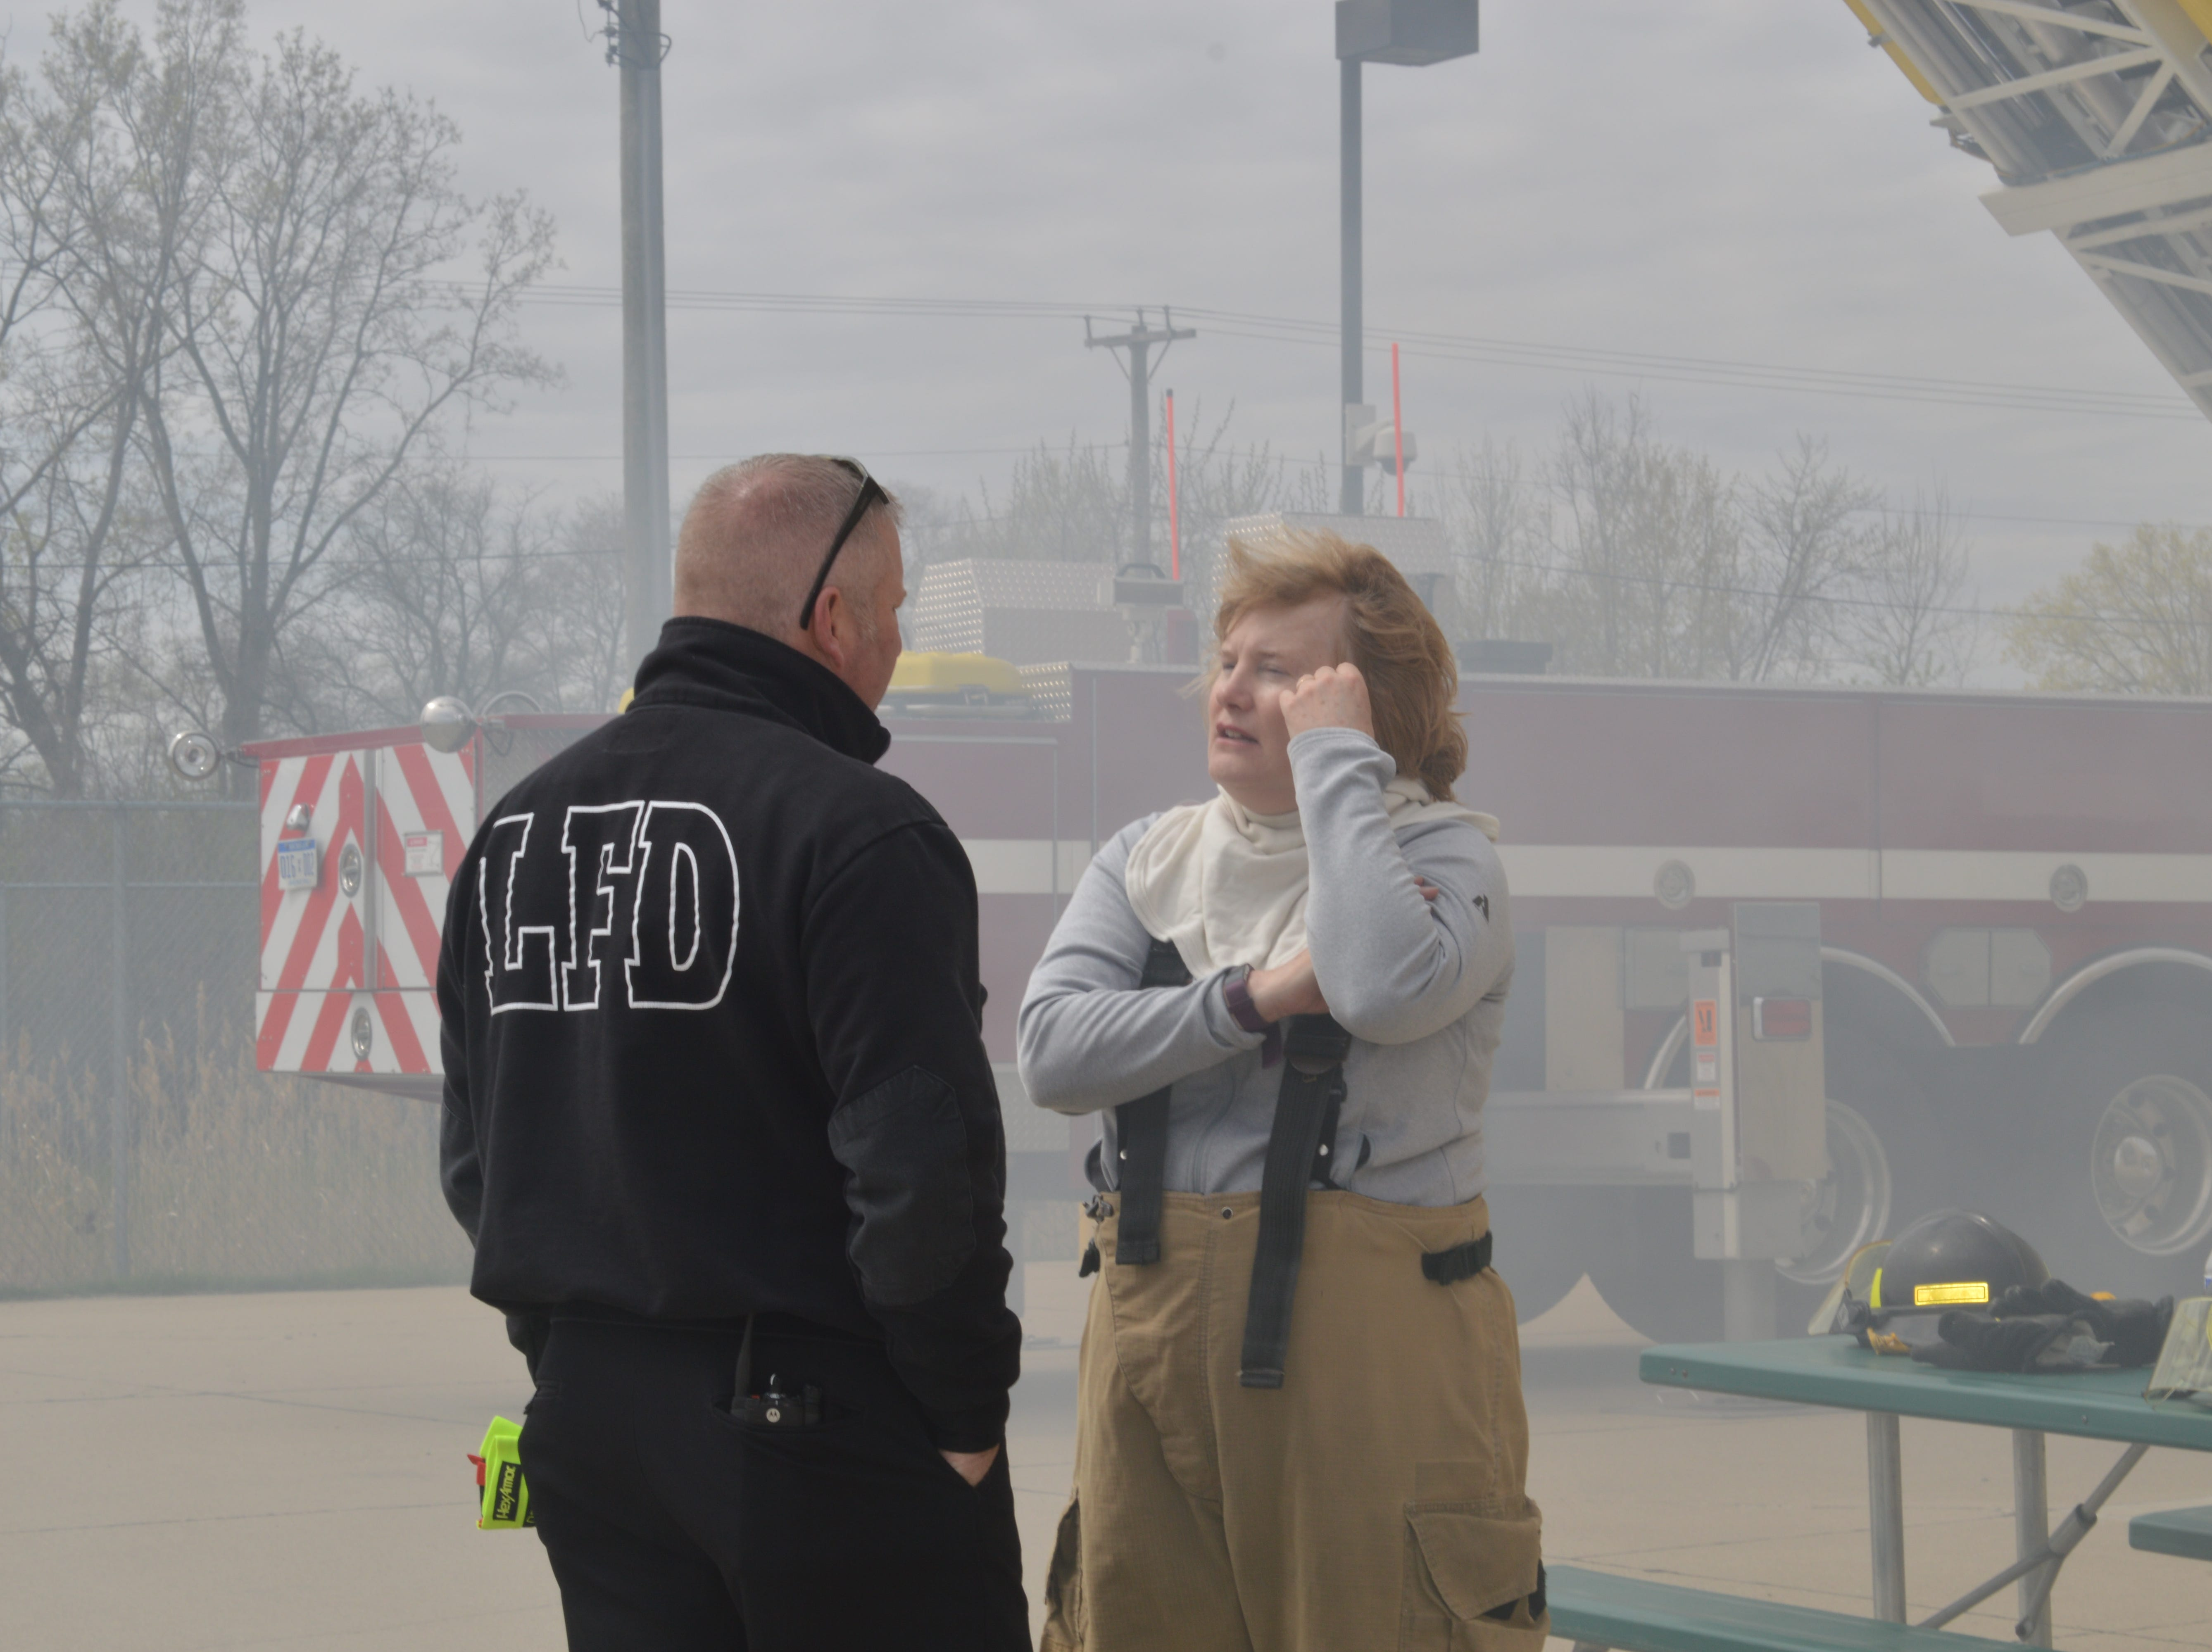 Livonia Fire Chief Dave Heavener and Councilwoman Kathleen McIntyre chat during a Fire Ops 101 event on Saturday, May 4, 2019.